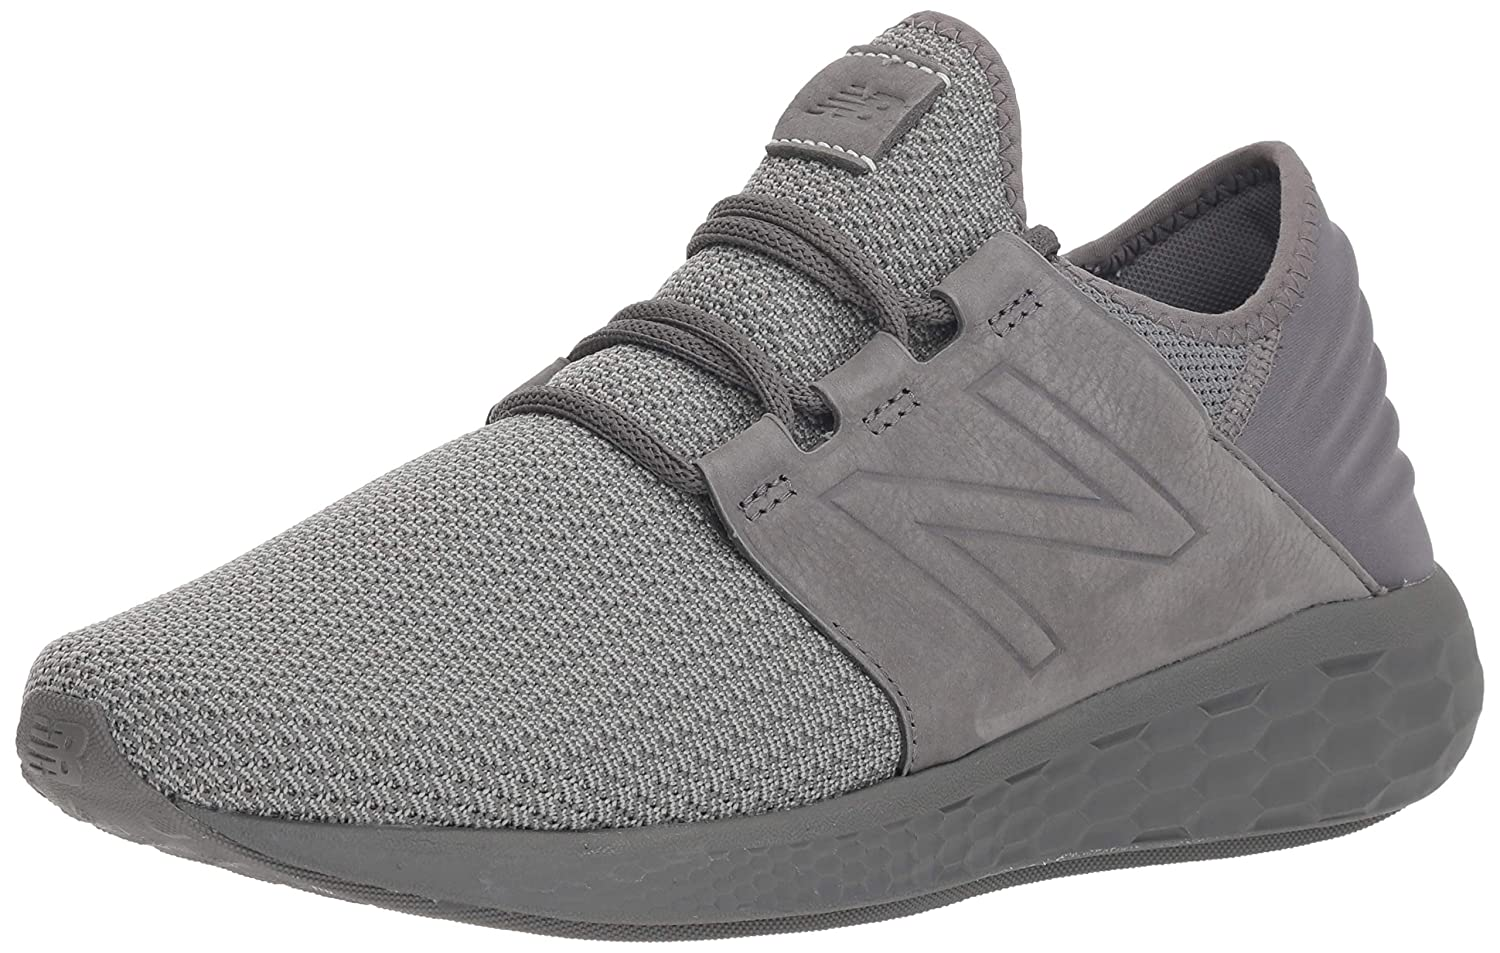 New Balance Fresh Foam EU|Gris Cruz V2 Knit, Running Homme 39.5 EU|Gris Foam (Castlerock/Team Away Grey Ng2) a9beb6